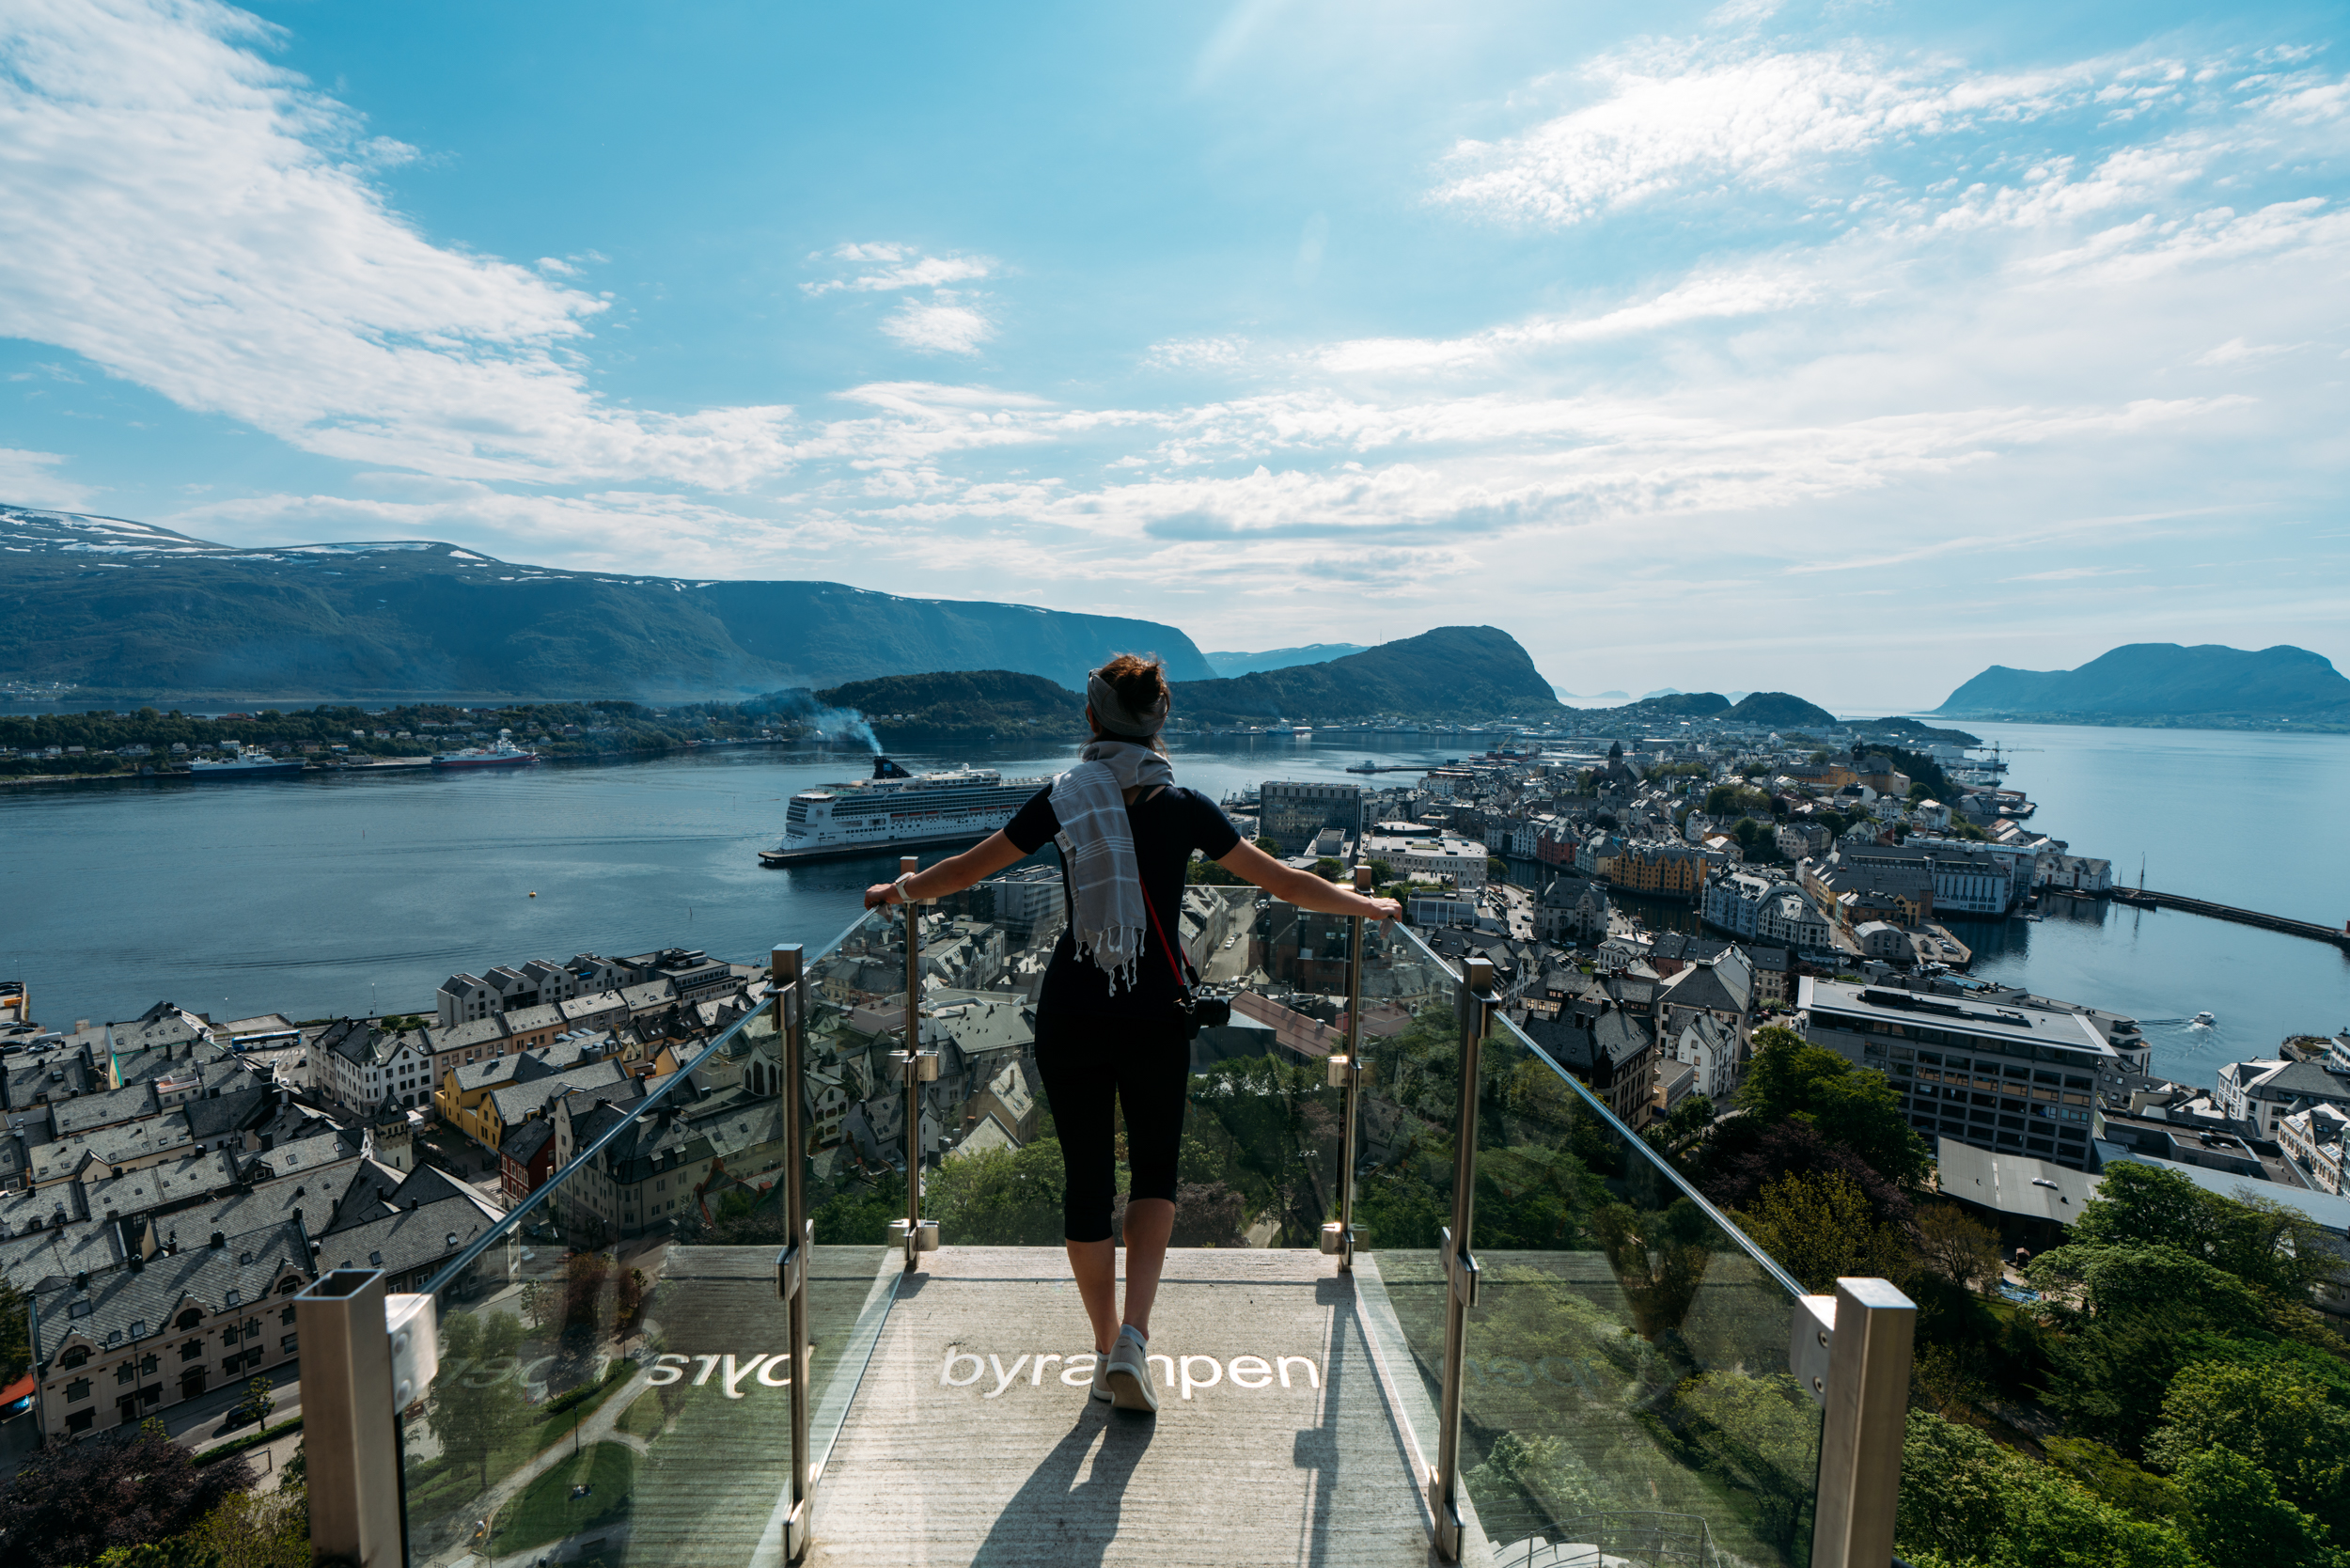 The view that greeted us on our first day in Ålesund, midway up to the Askla viewpoint.